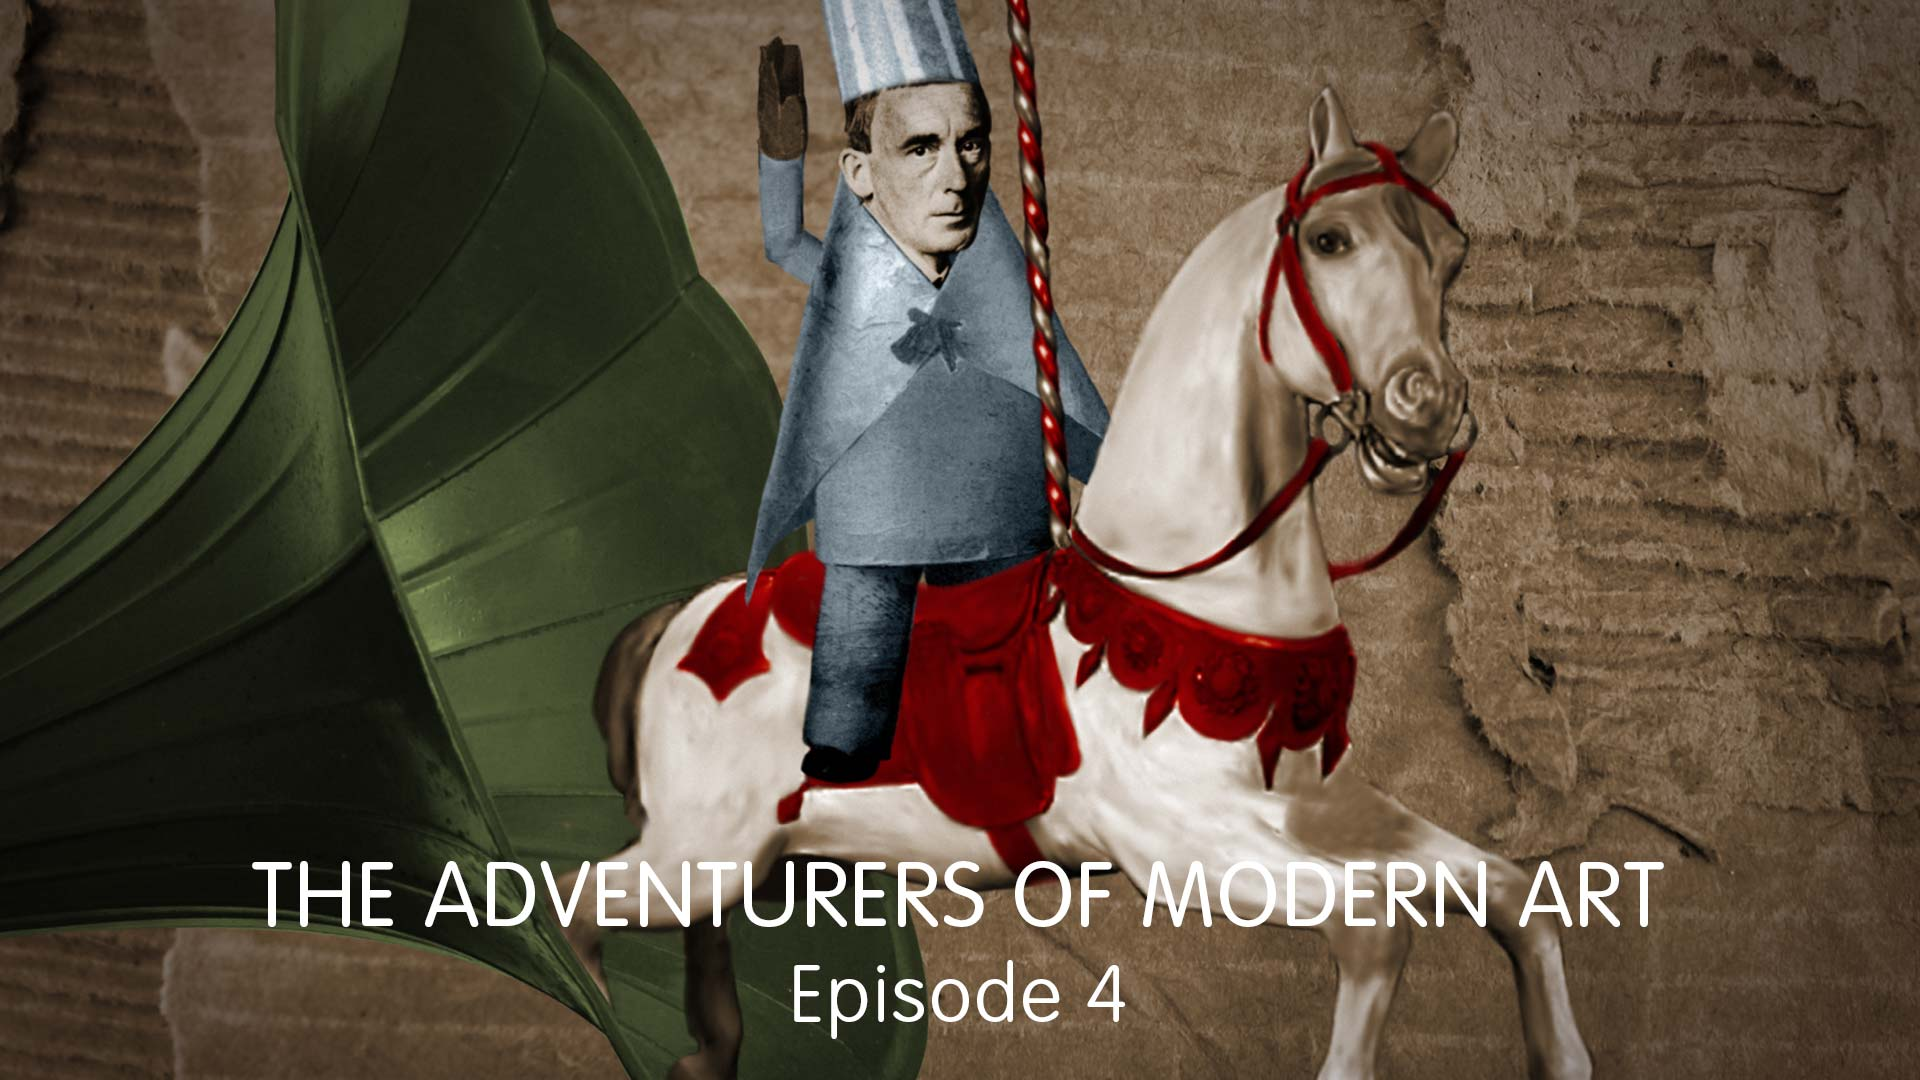 The Adventurers of Modern Art - Ep 4 - image